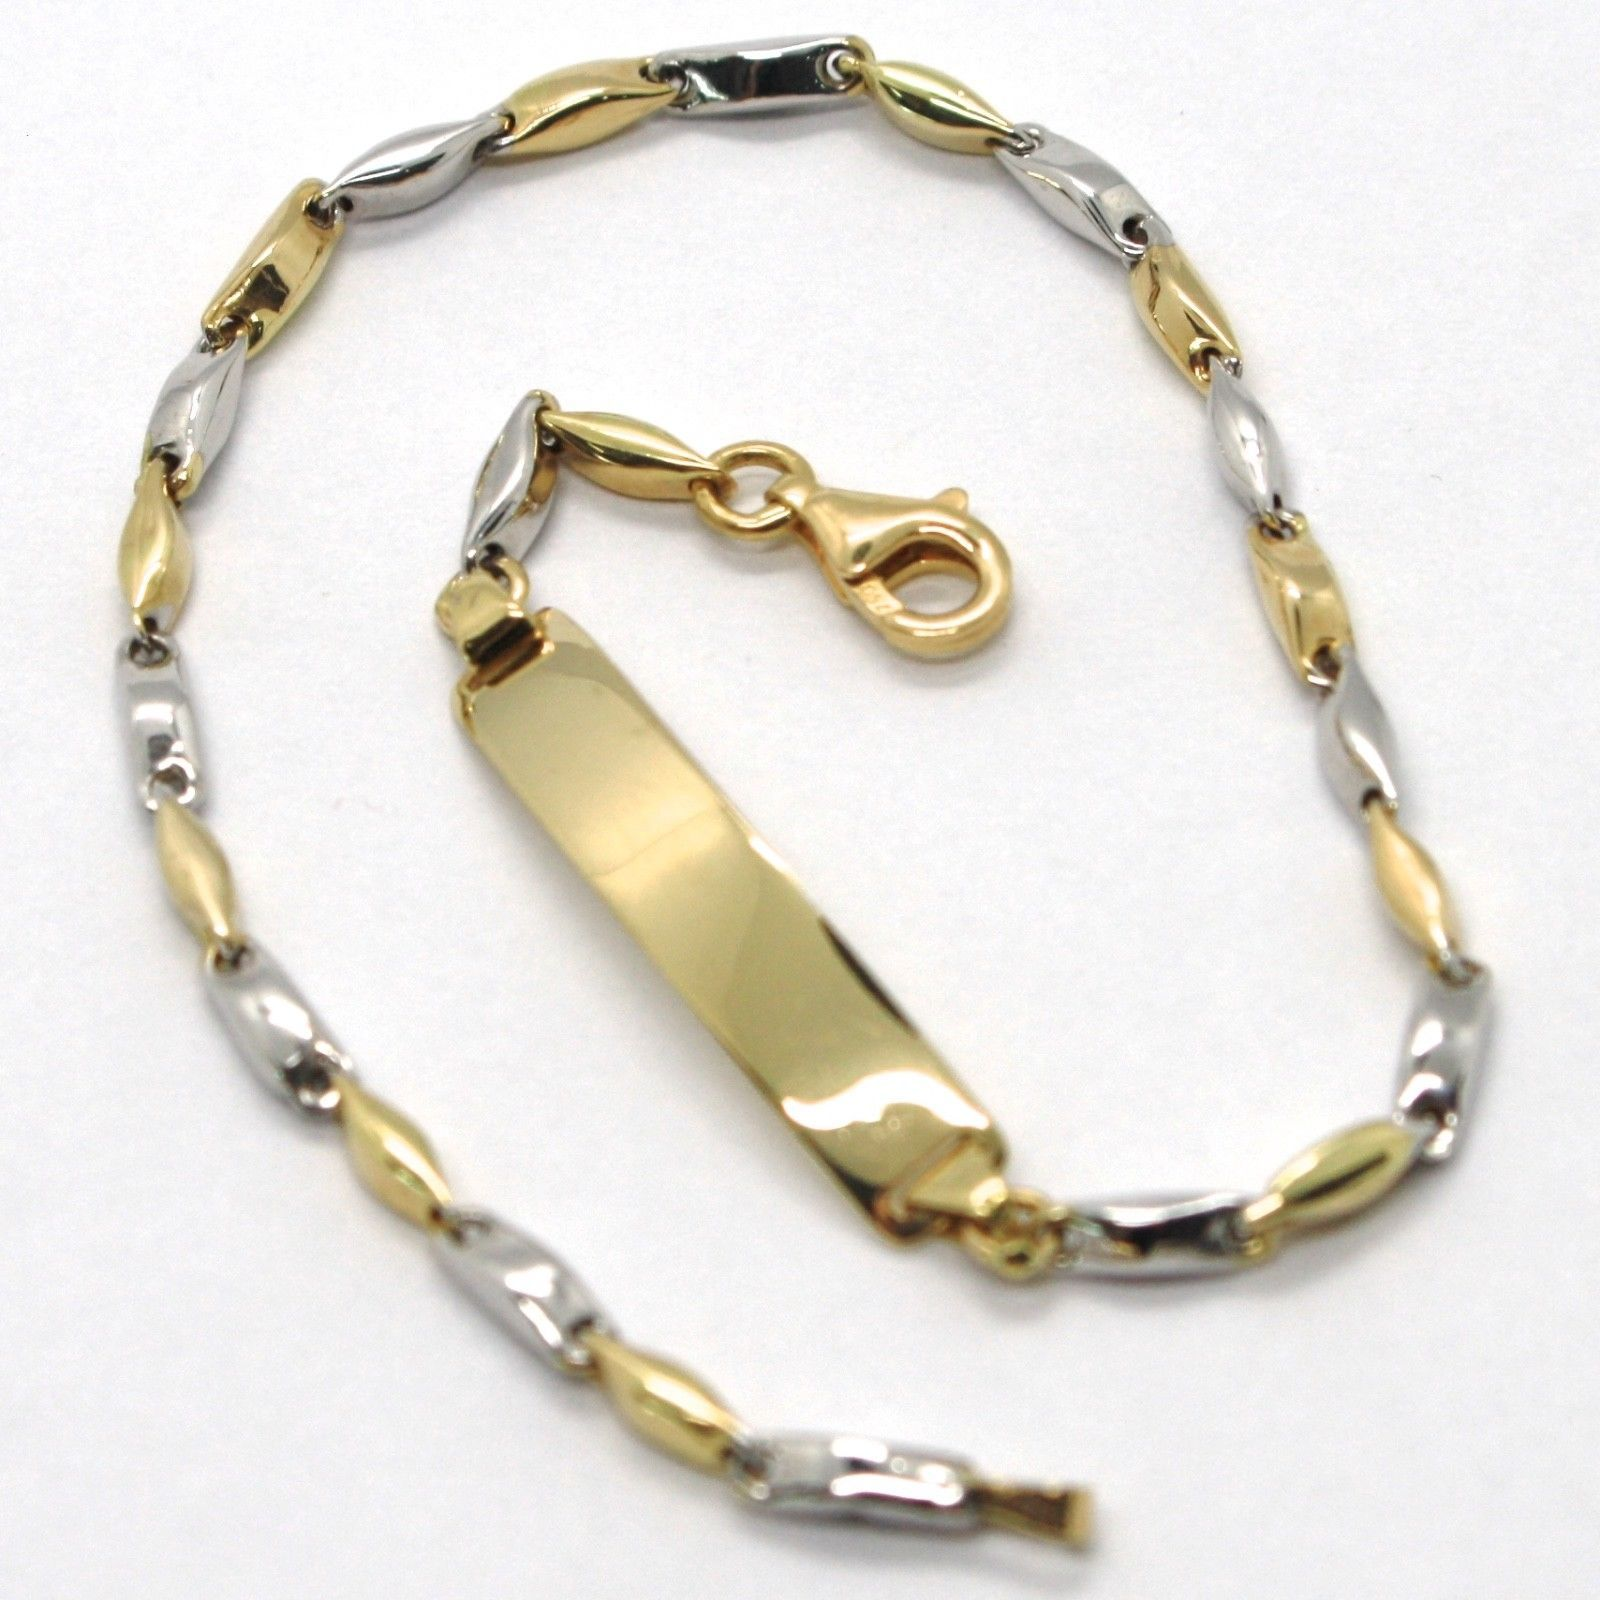 18K WHITE YELLOW GOLD BRACELET ENGRAVED PLATE ALTERNATE TUBE ONDULATE LINK